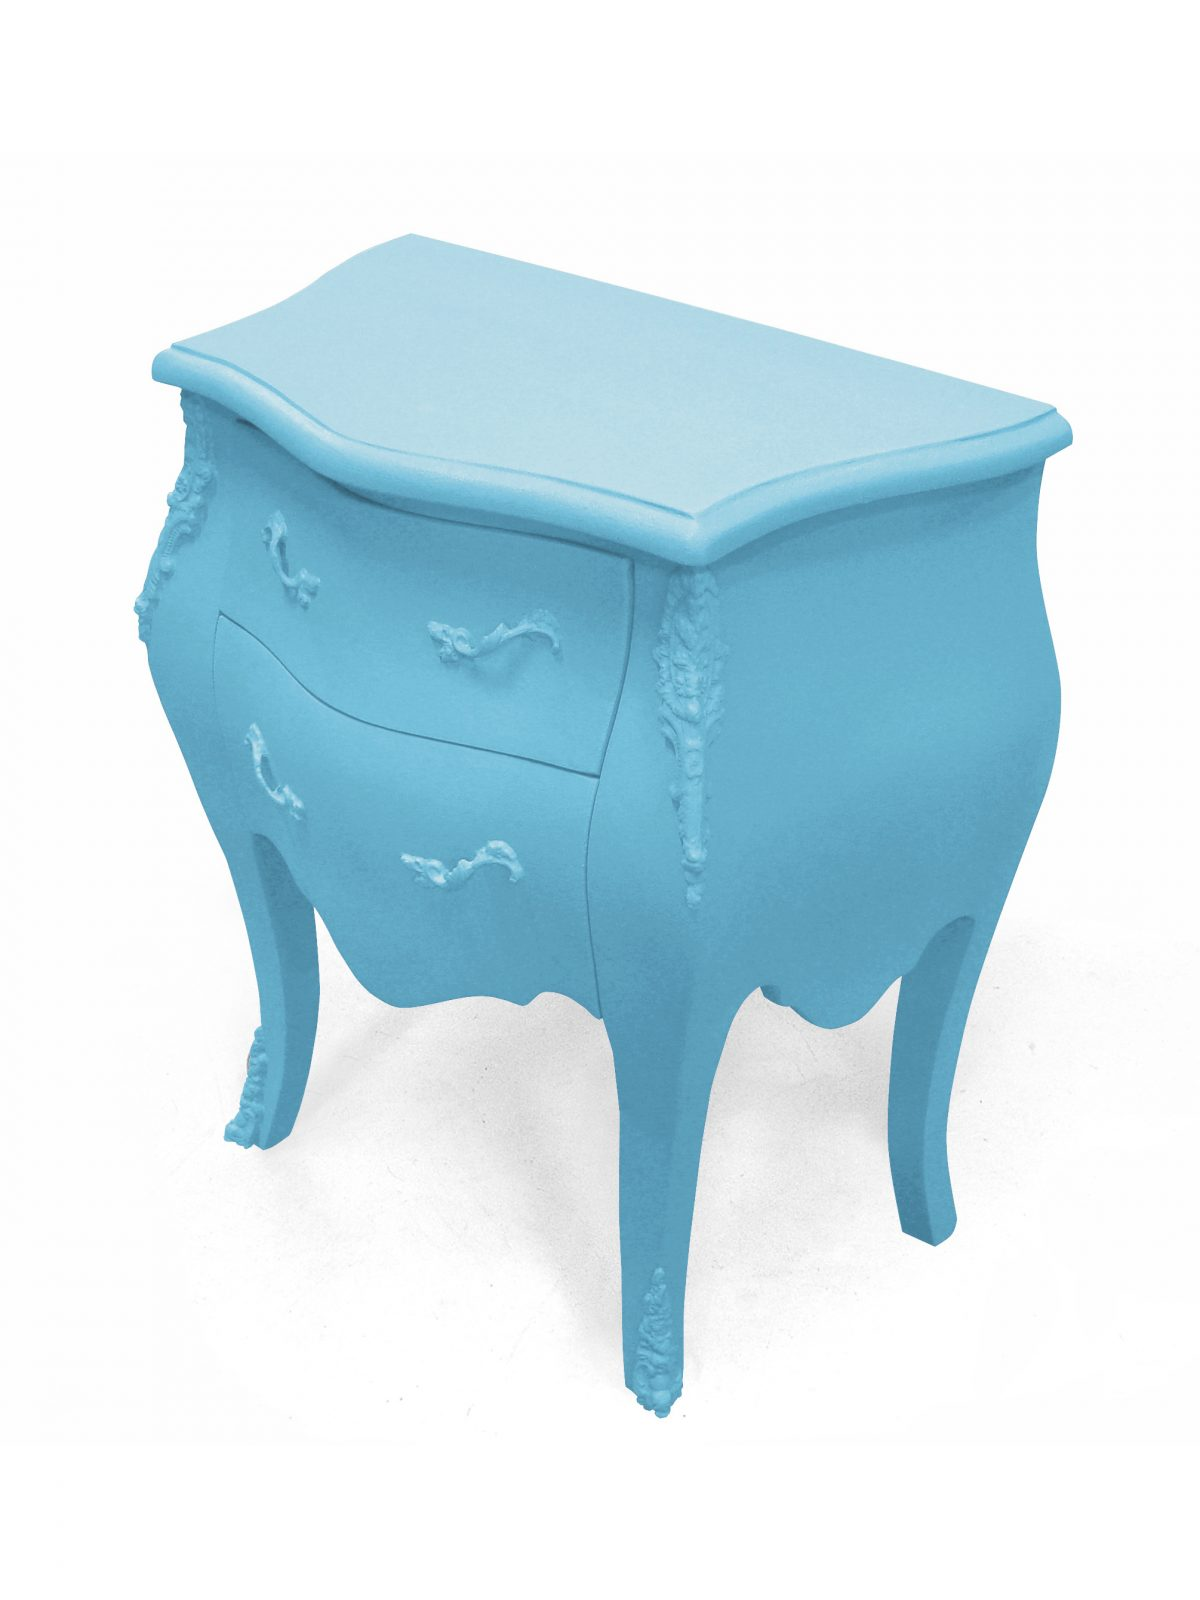 JSPR Plastic Fantastic Dressoir Soft Blue Lichtblauw Excusief Kastje Dutch Design